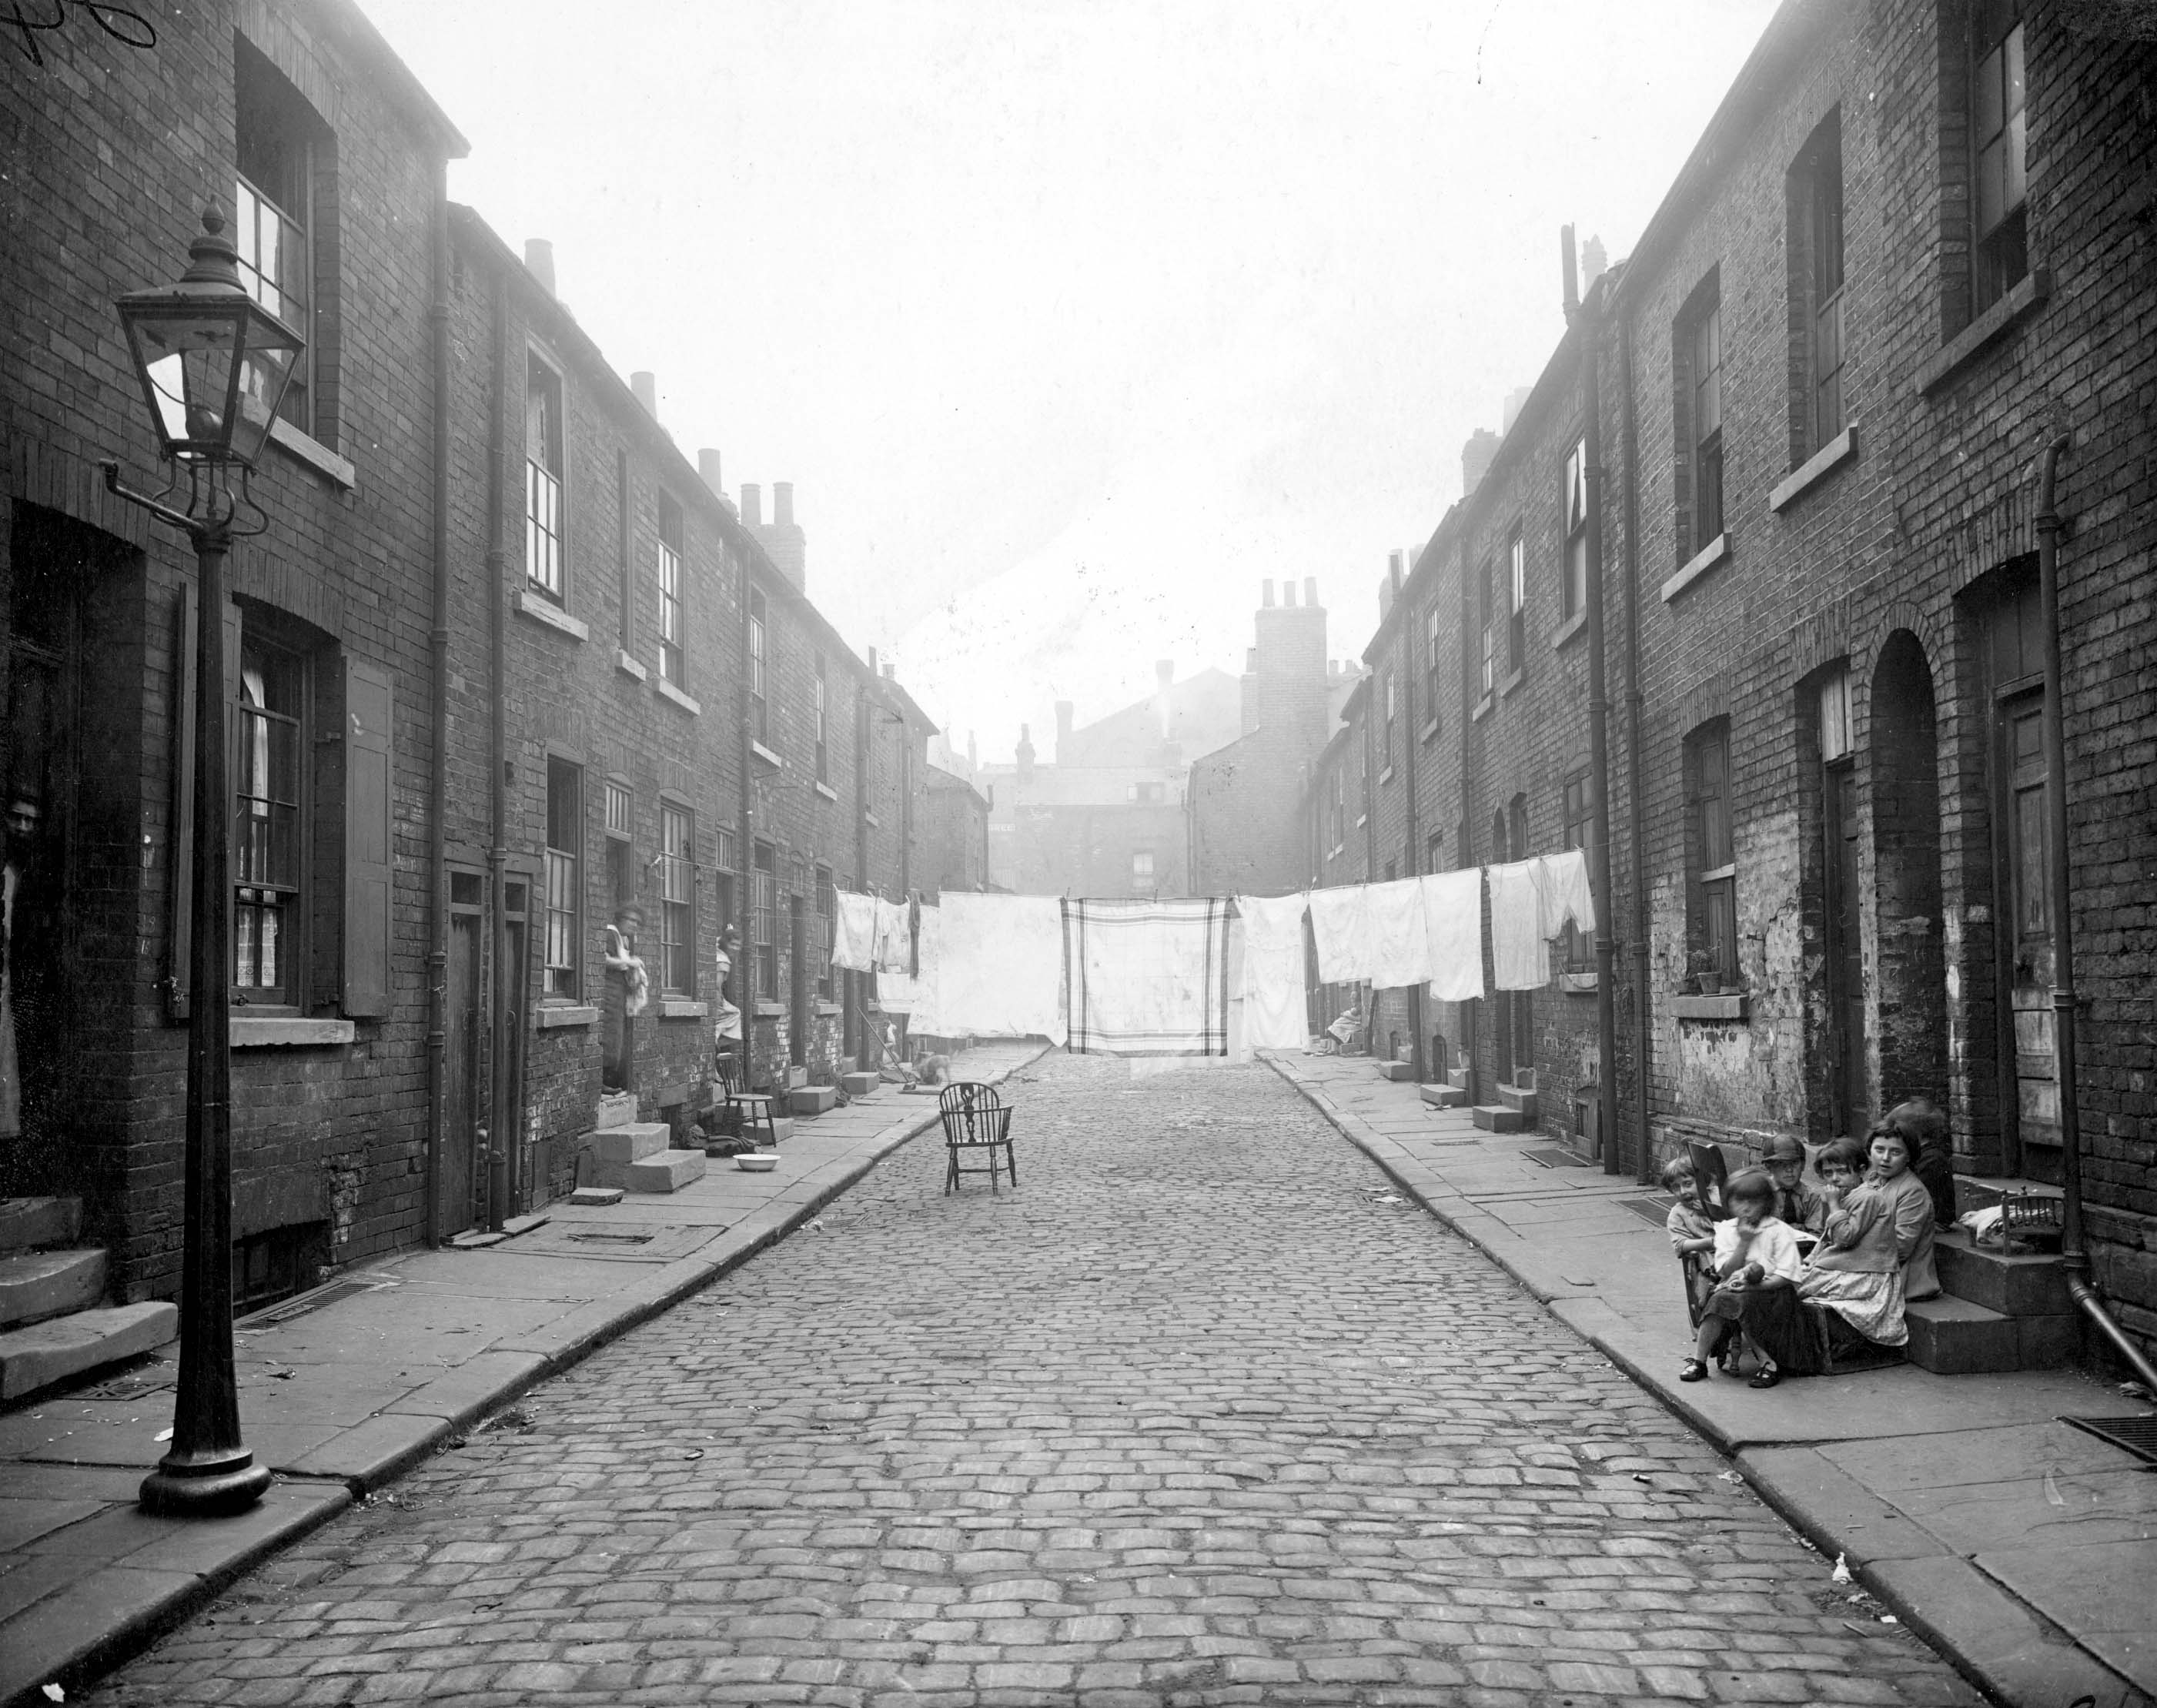 Street View of Back-to-Back Terraced houses in Leeds